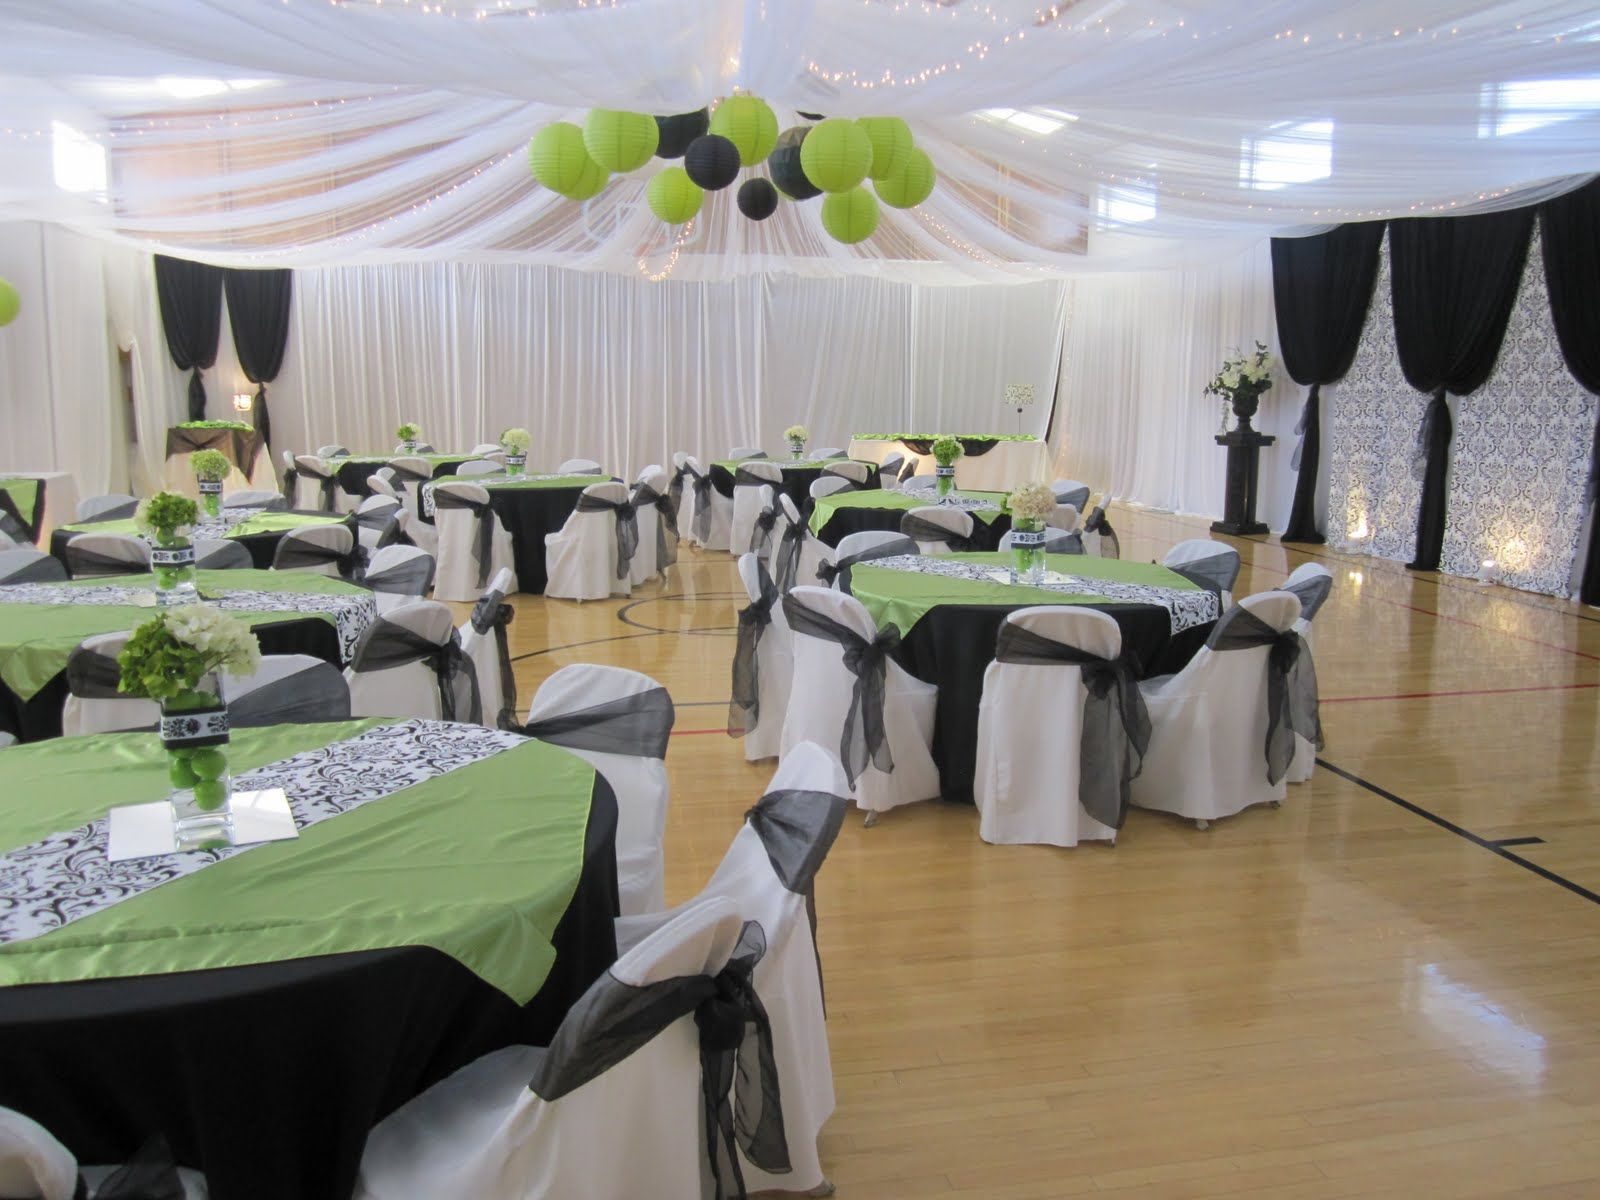 Wedding reception in a gym ideas wedding reception for Wedding hall decoration photos